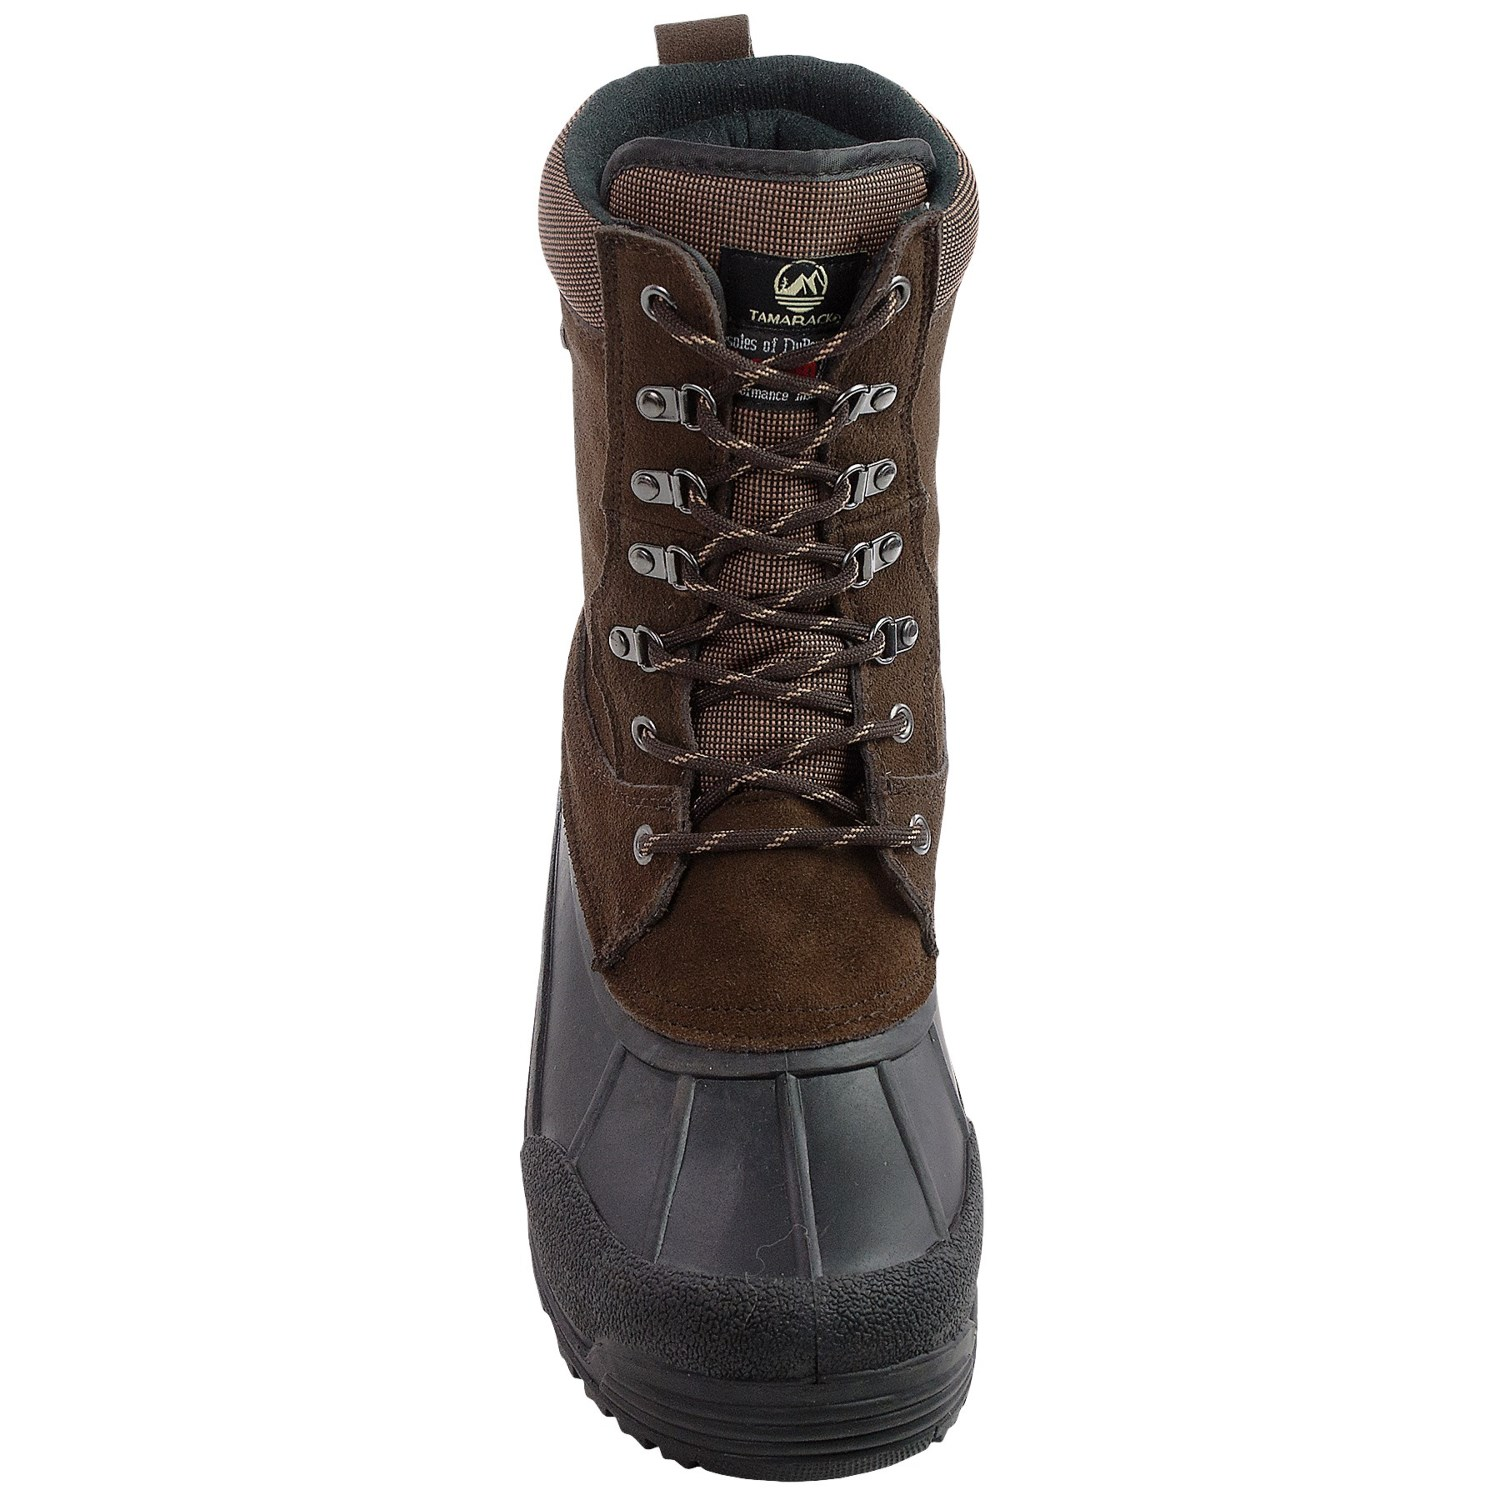 Tamarack Tundra Suede Pac Boots For Men Save 74